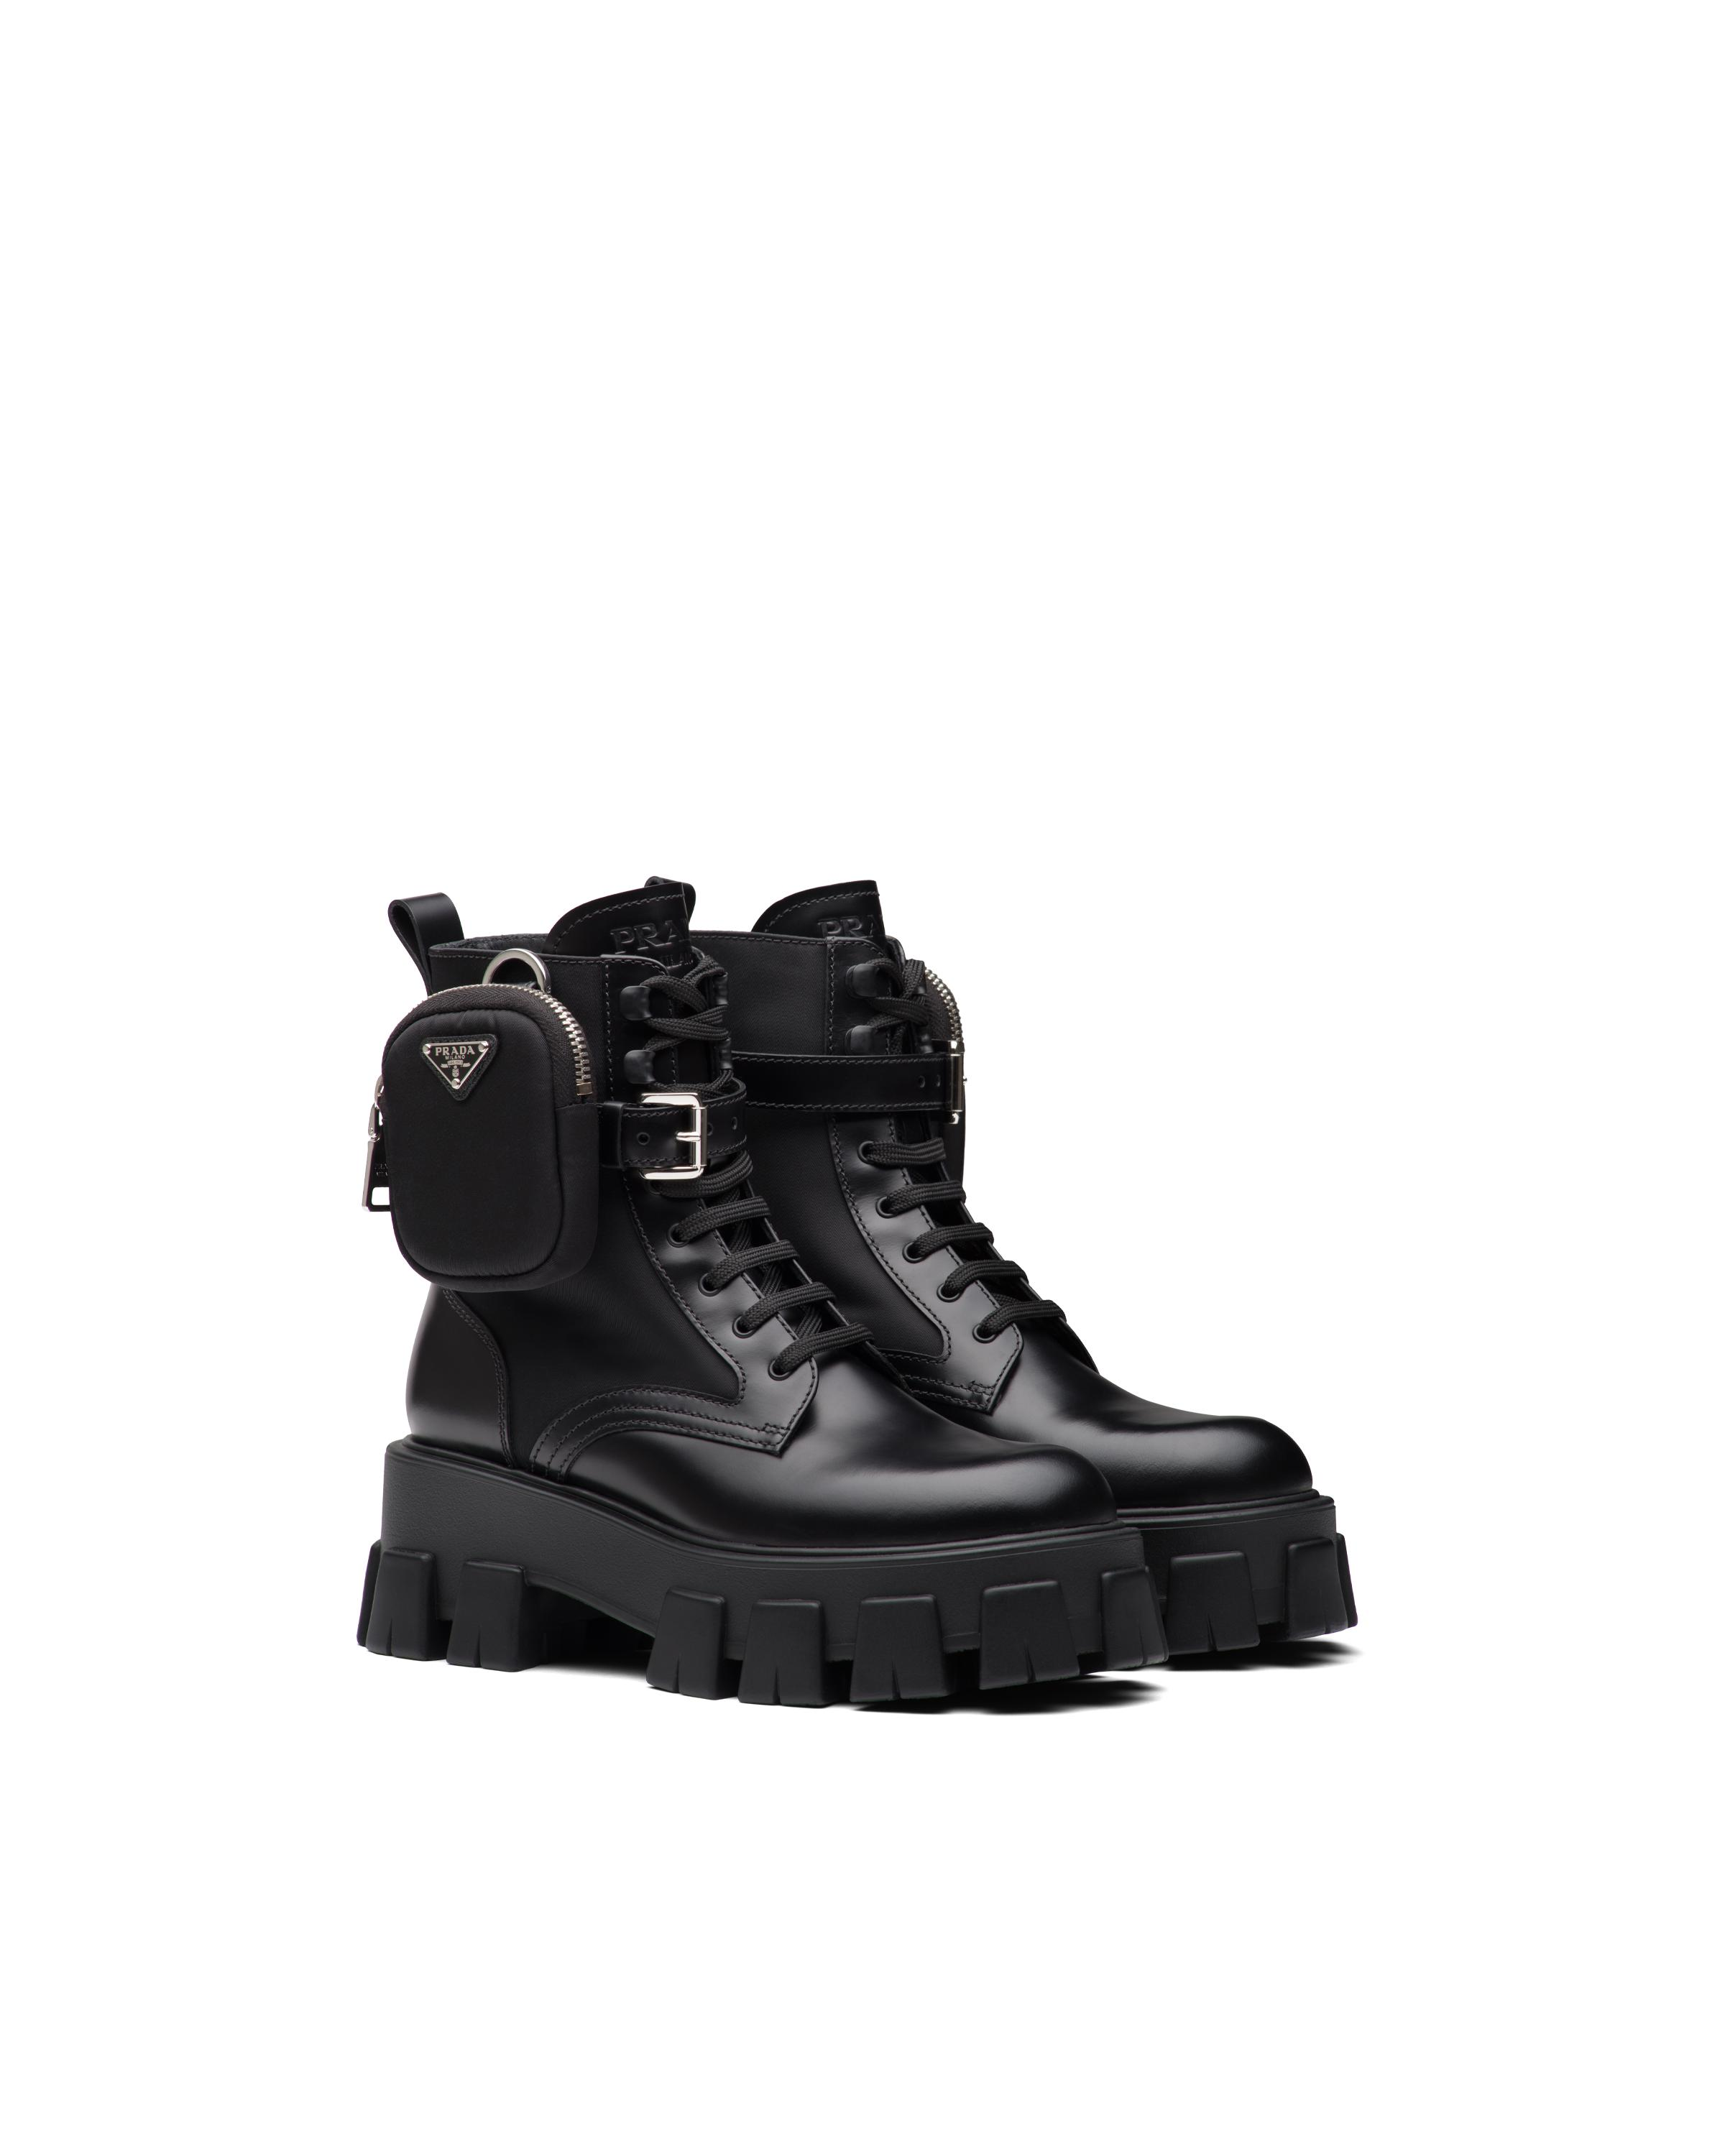 Brushed Rois Leather And Nylon Monolith Boots Women Black 5